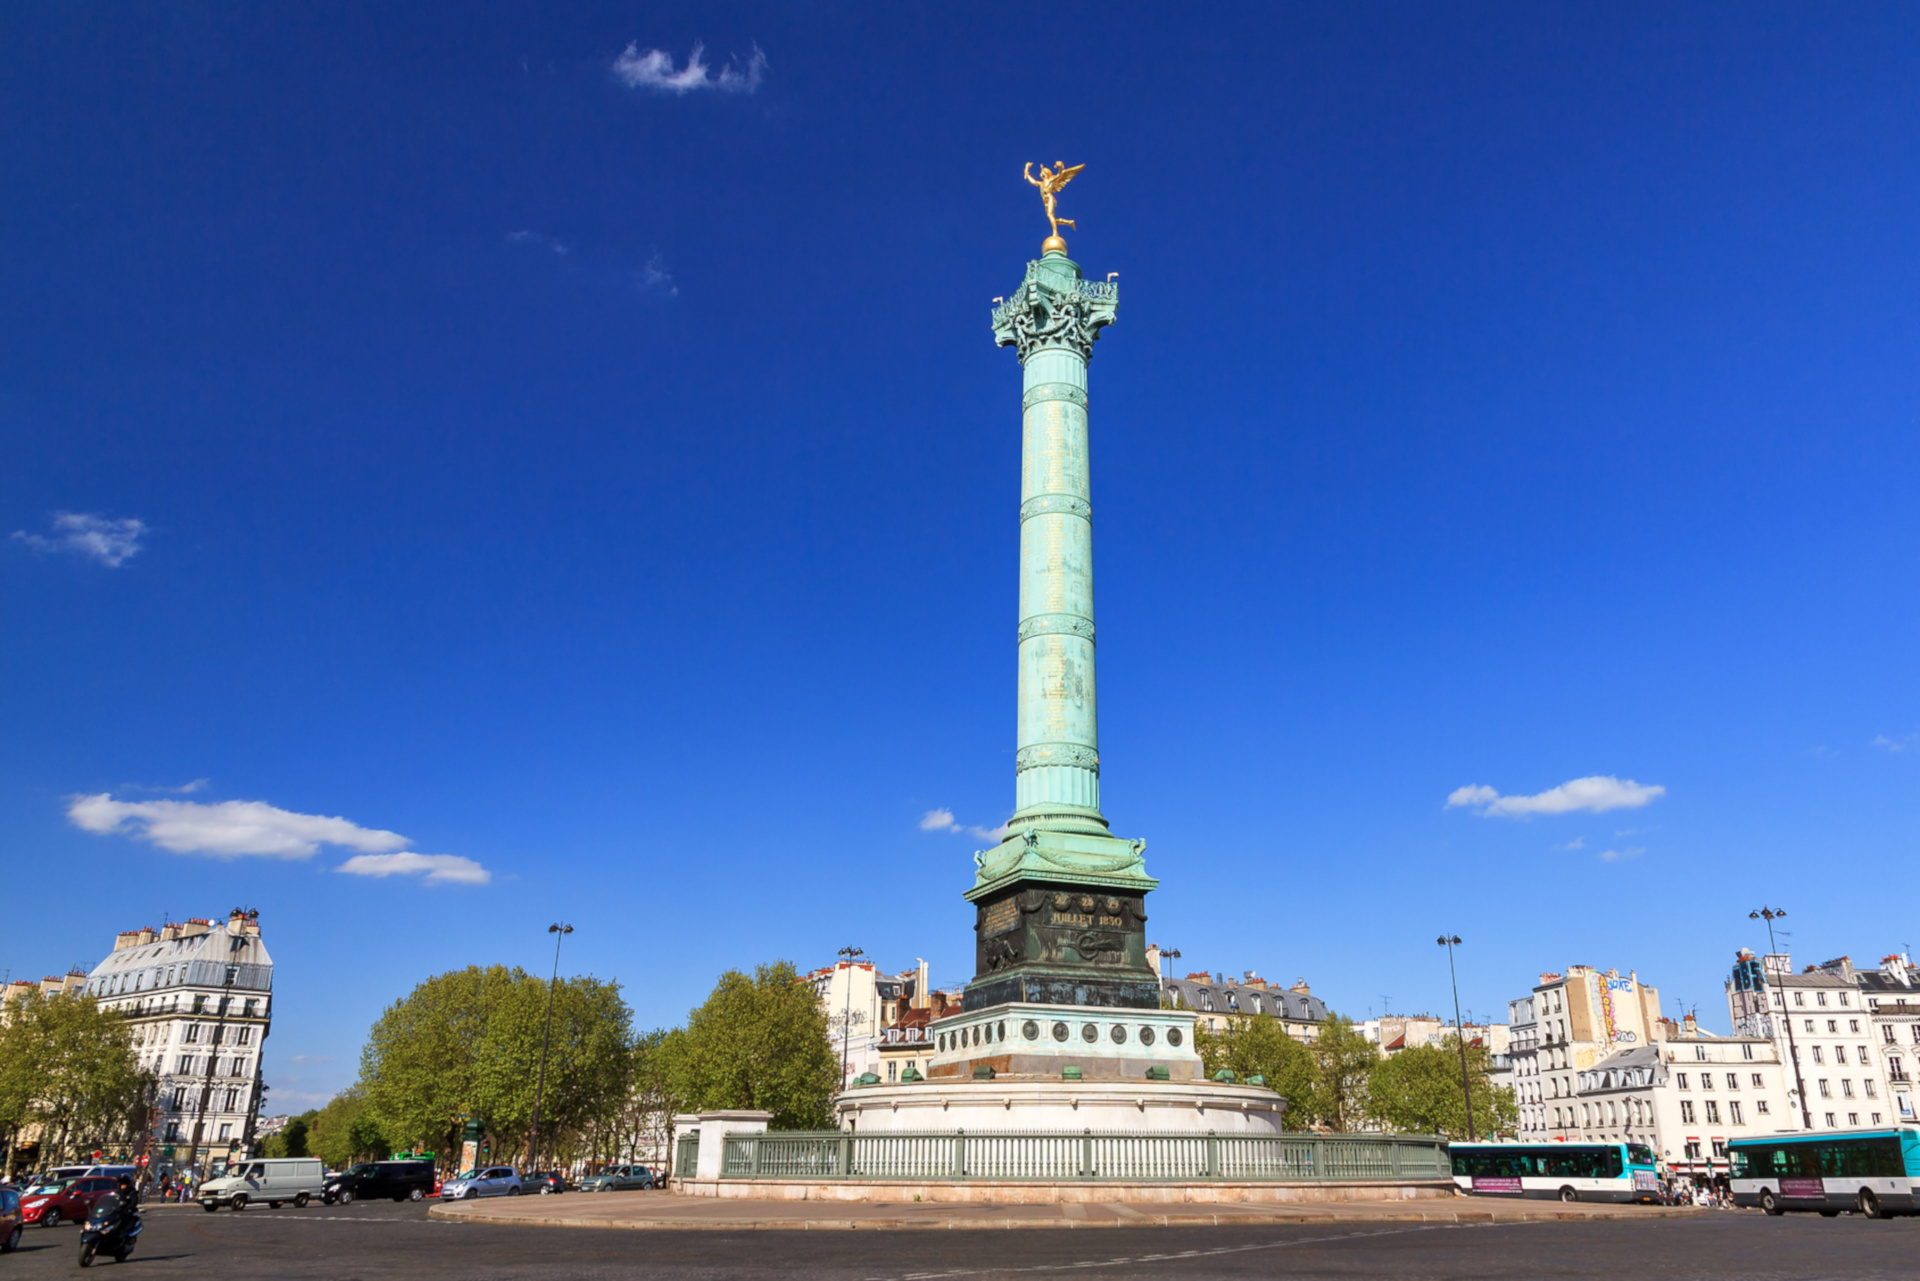 So many wonderful attractions at your doorstep in the Vivarais vacation rental by Paris Perfect